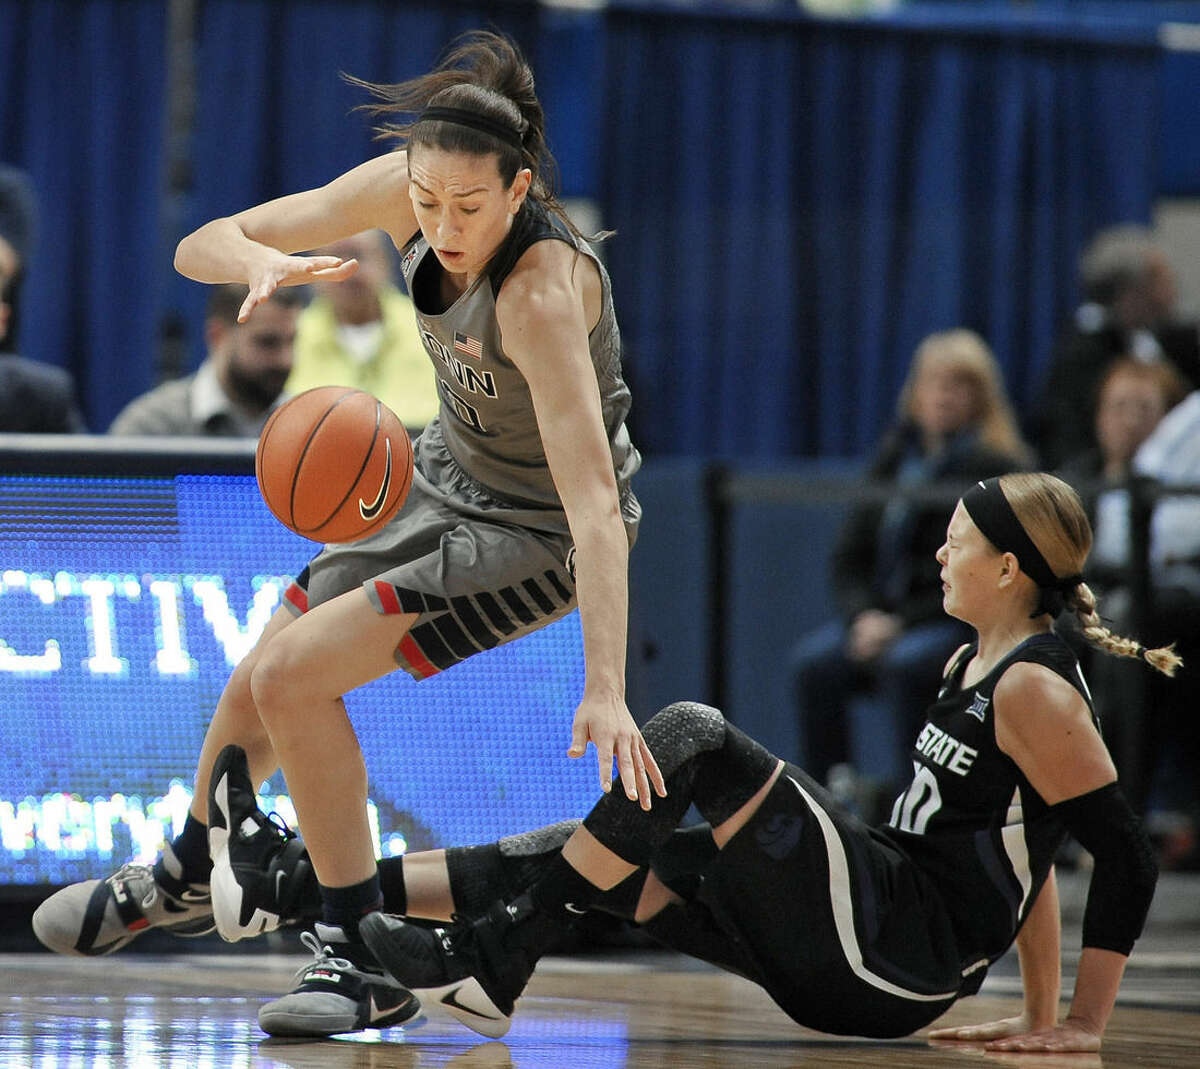 Connecticut's Breanna Stewart reaches for the ball after colliding with Kansas State's Kayla Goth, right, during the first half of an NCAA college basketball game, Monday, Nov. 23, 2015, in Hartford, Conn. (AP Photo/Jessica Hill)